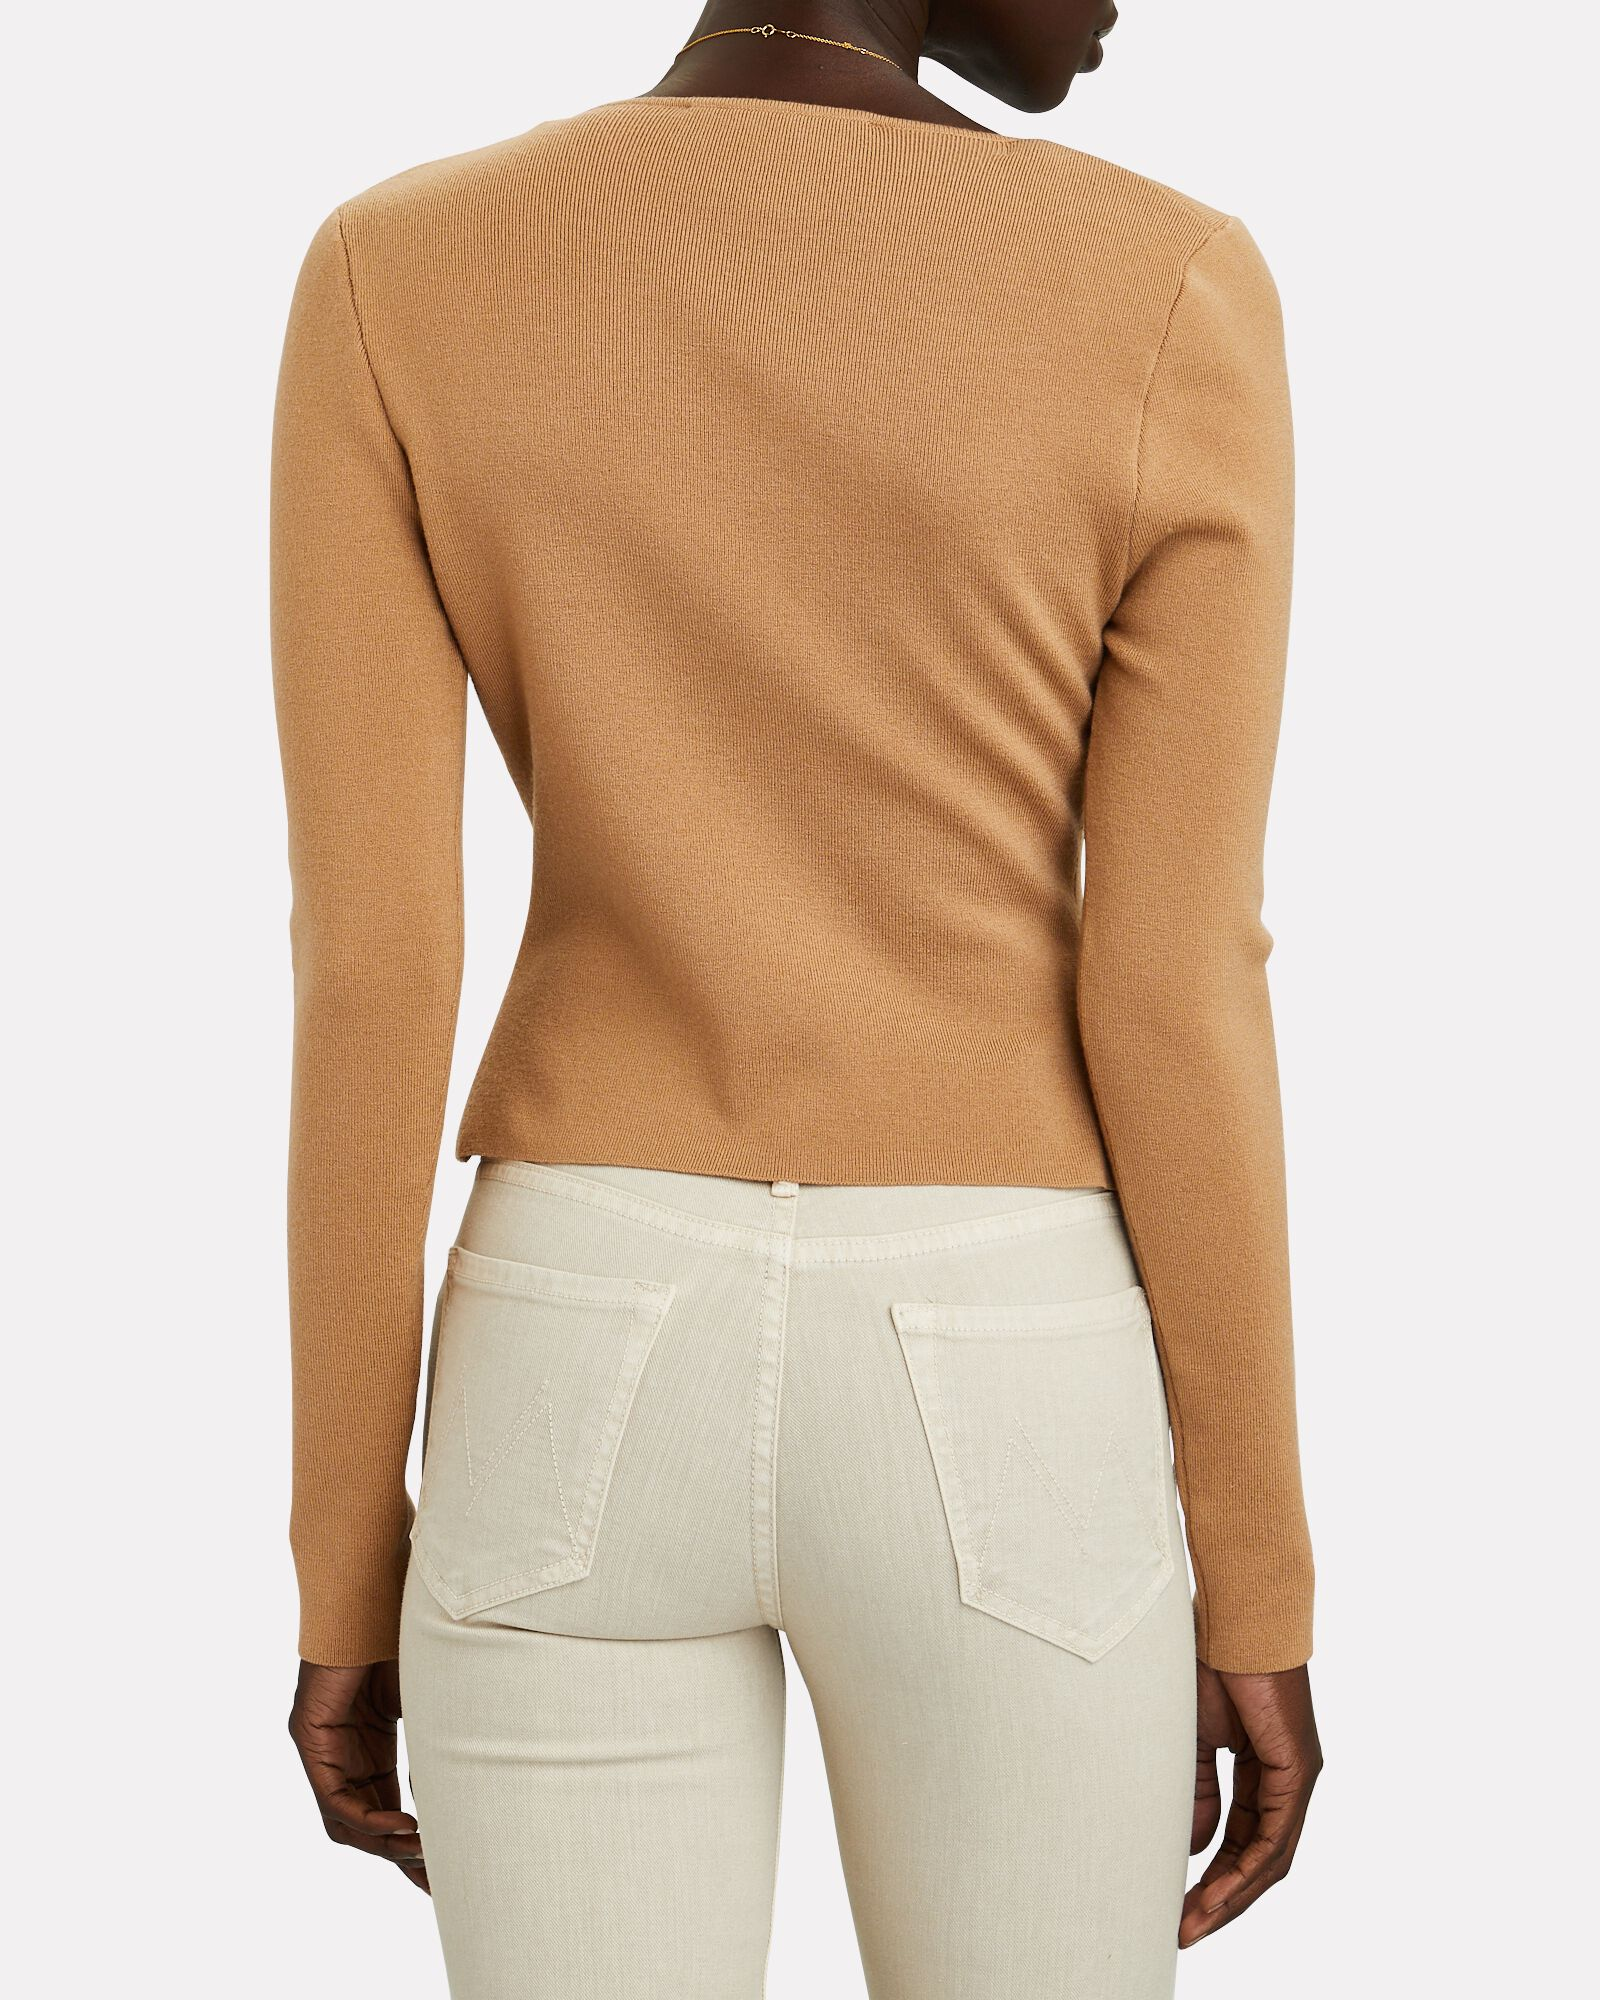 Asymmetrical V-Neck Sweater, BEIGE, hi-res